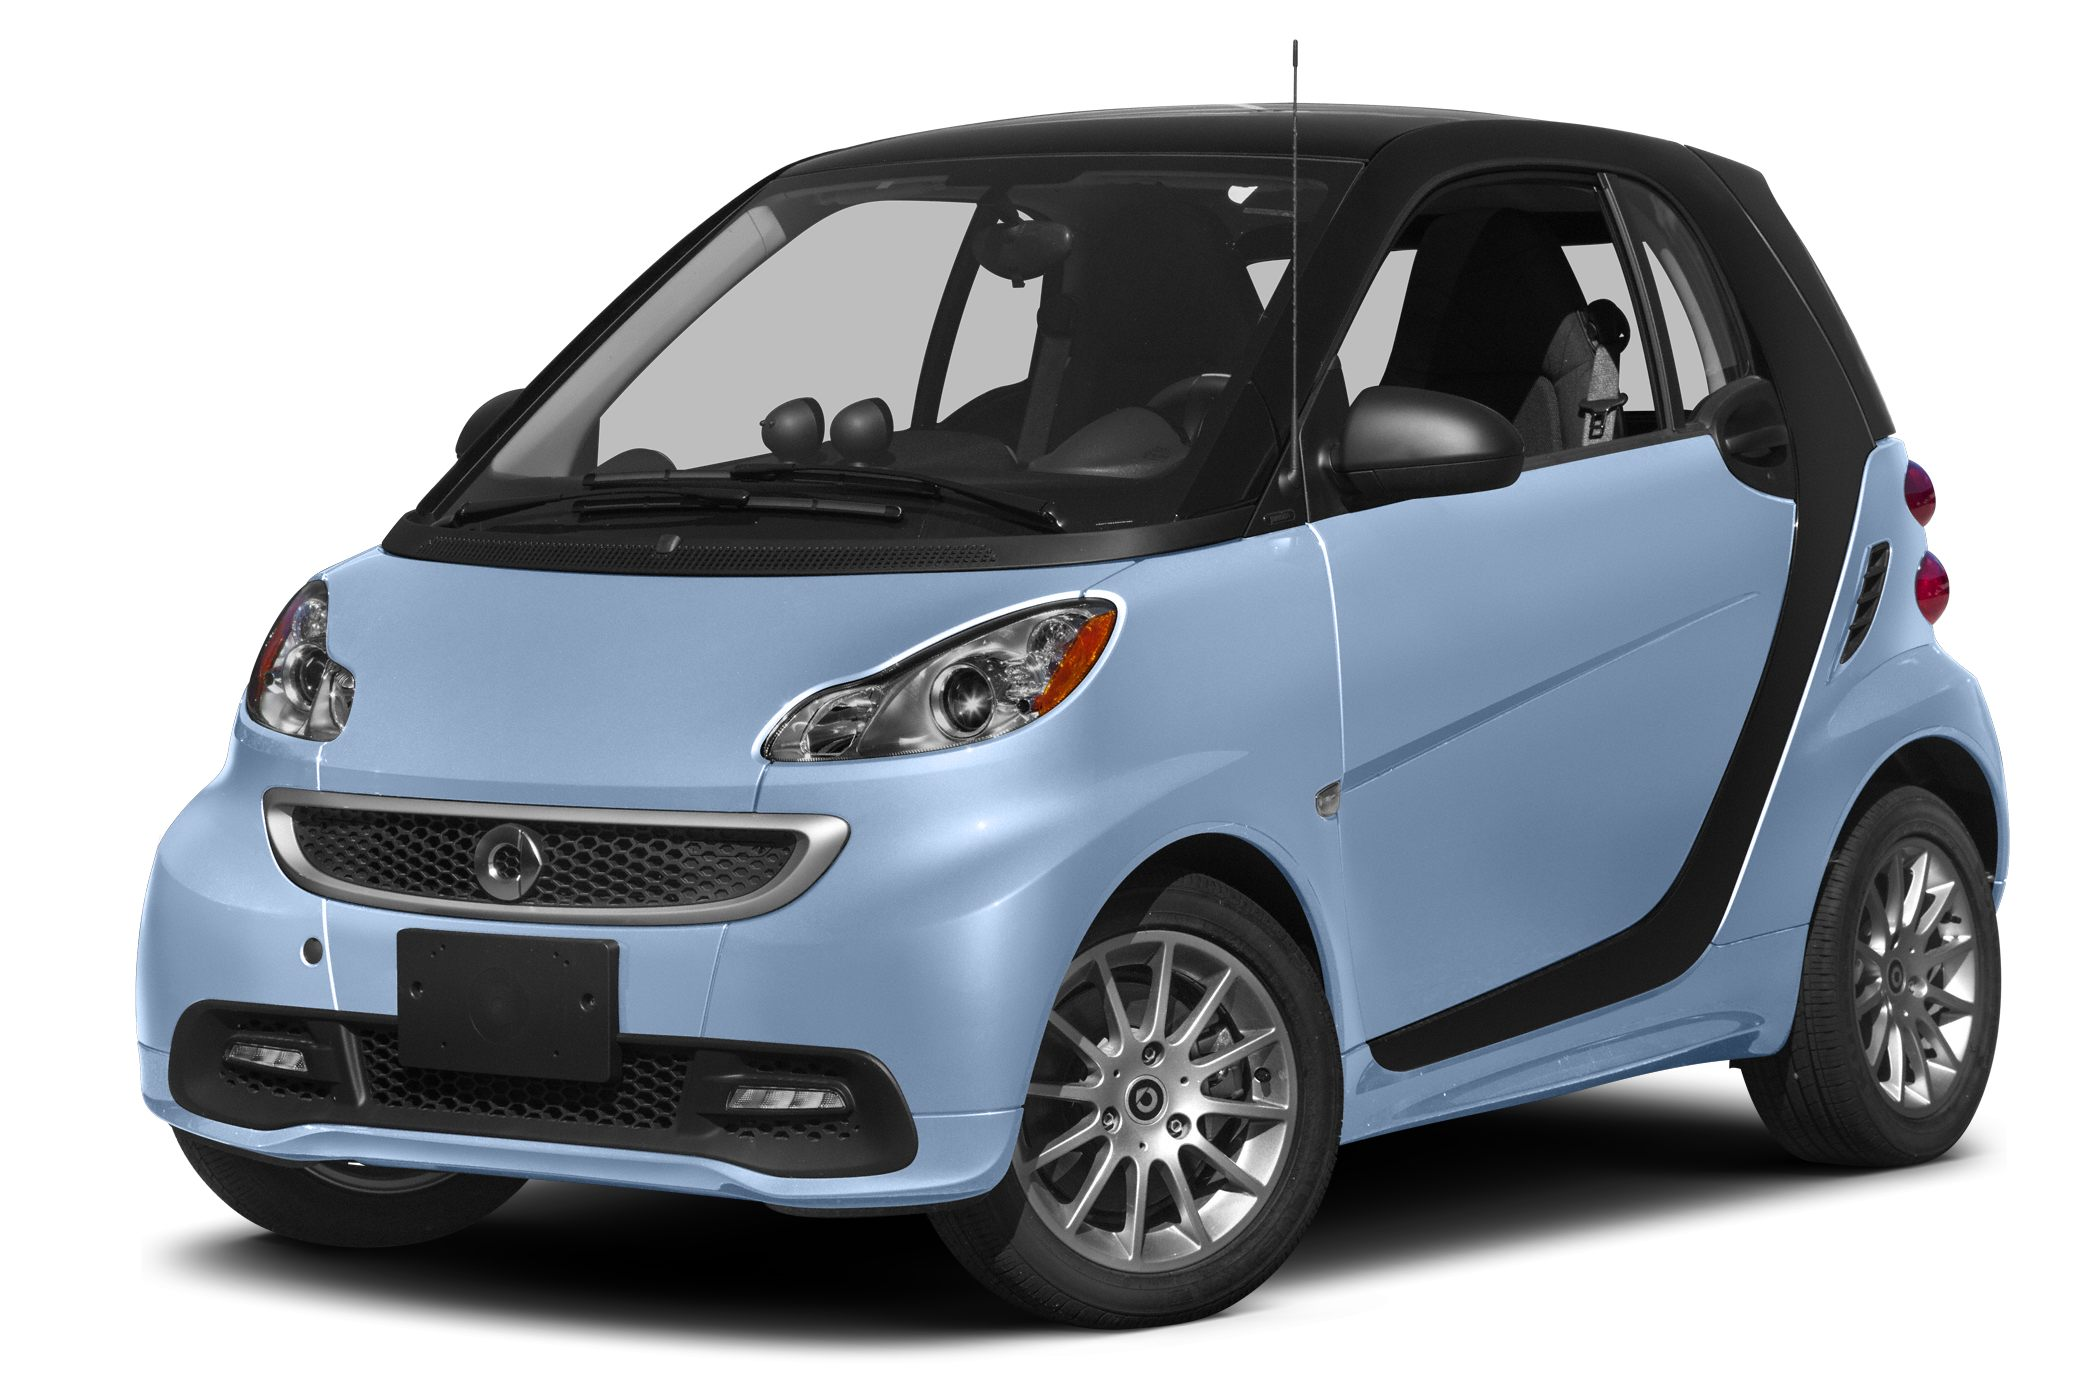 2018 Smart fortwo photo - 4